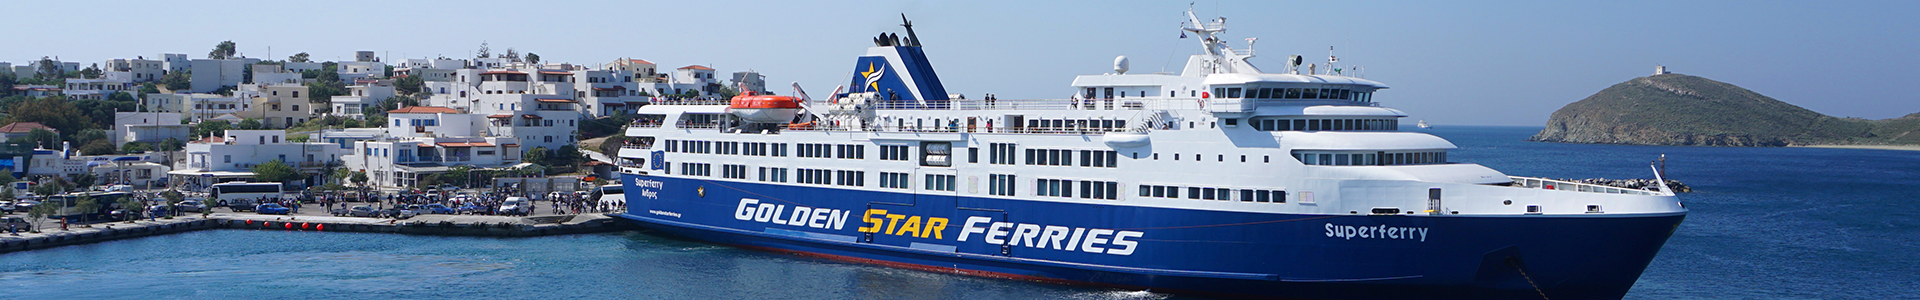 GSF-HeaderPhotosFleet(SUPERFERRY)